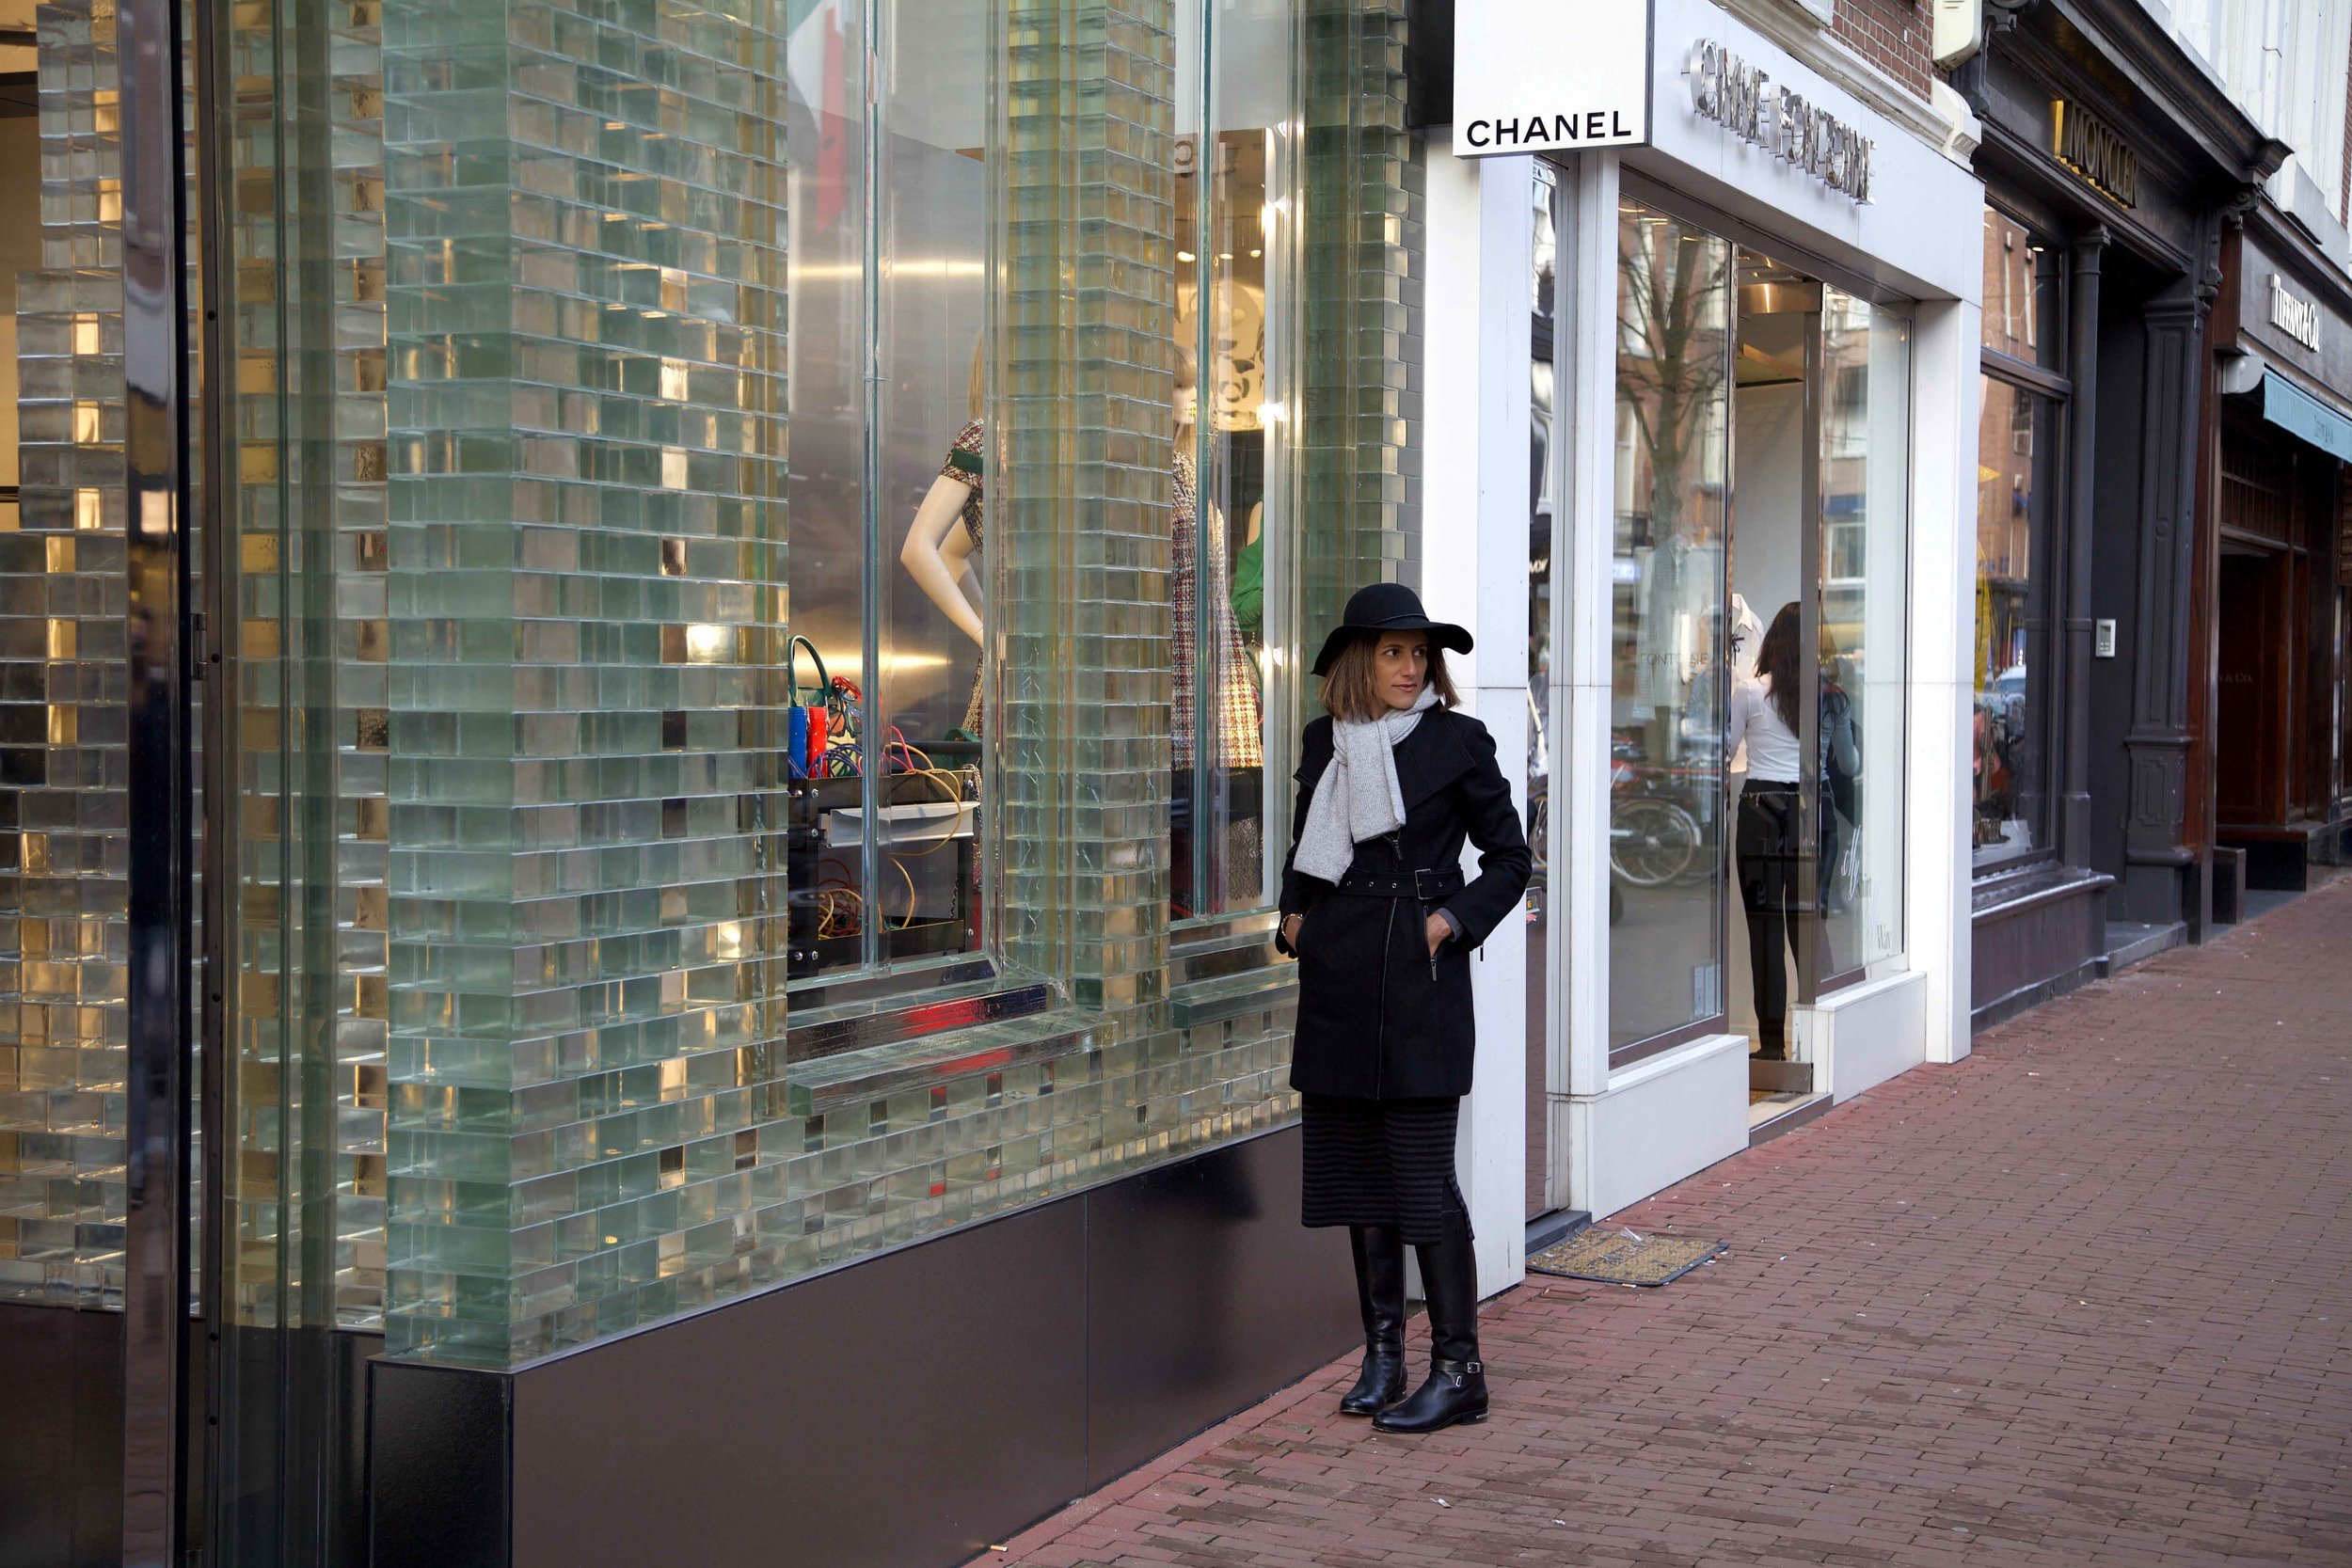 Luxury shopping, PC Hooftstraat, Amsterdam. Photo: Fabio Ricci. Image©thingstodot.com